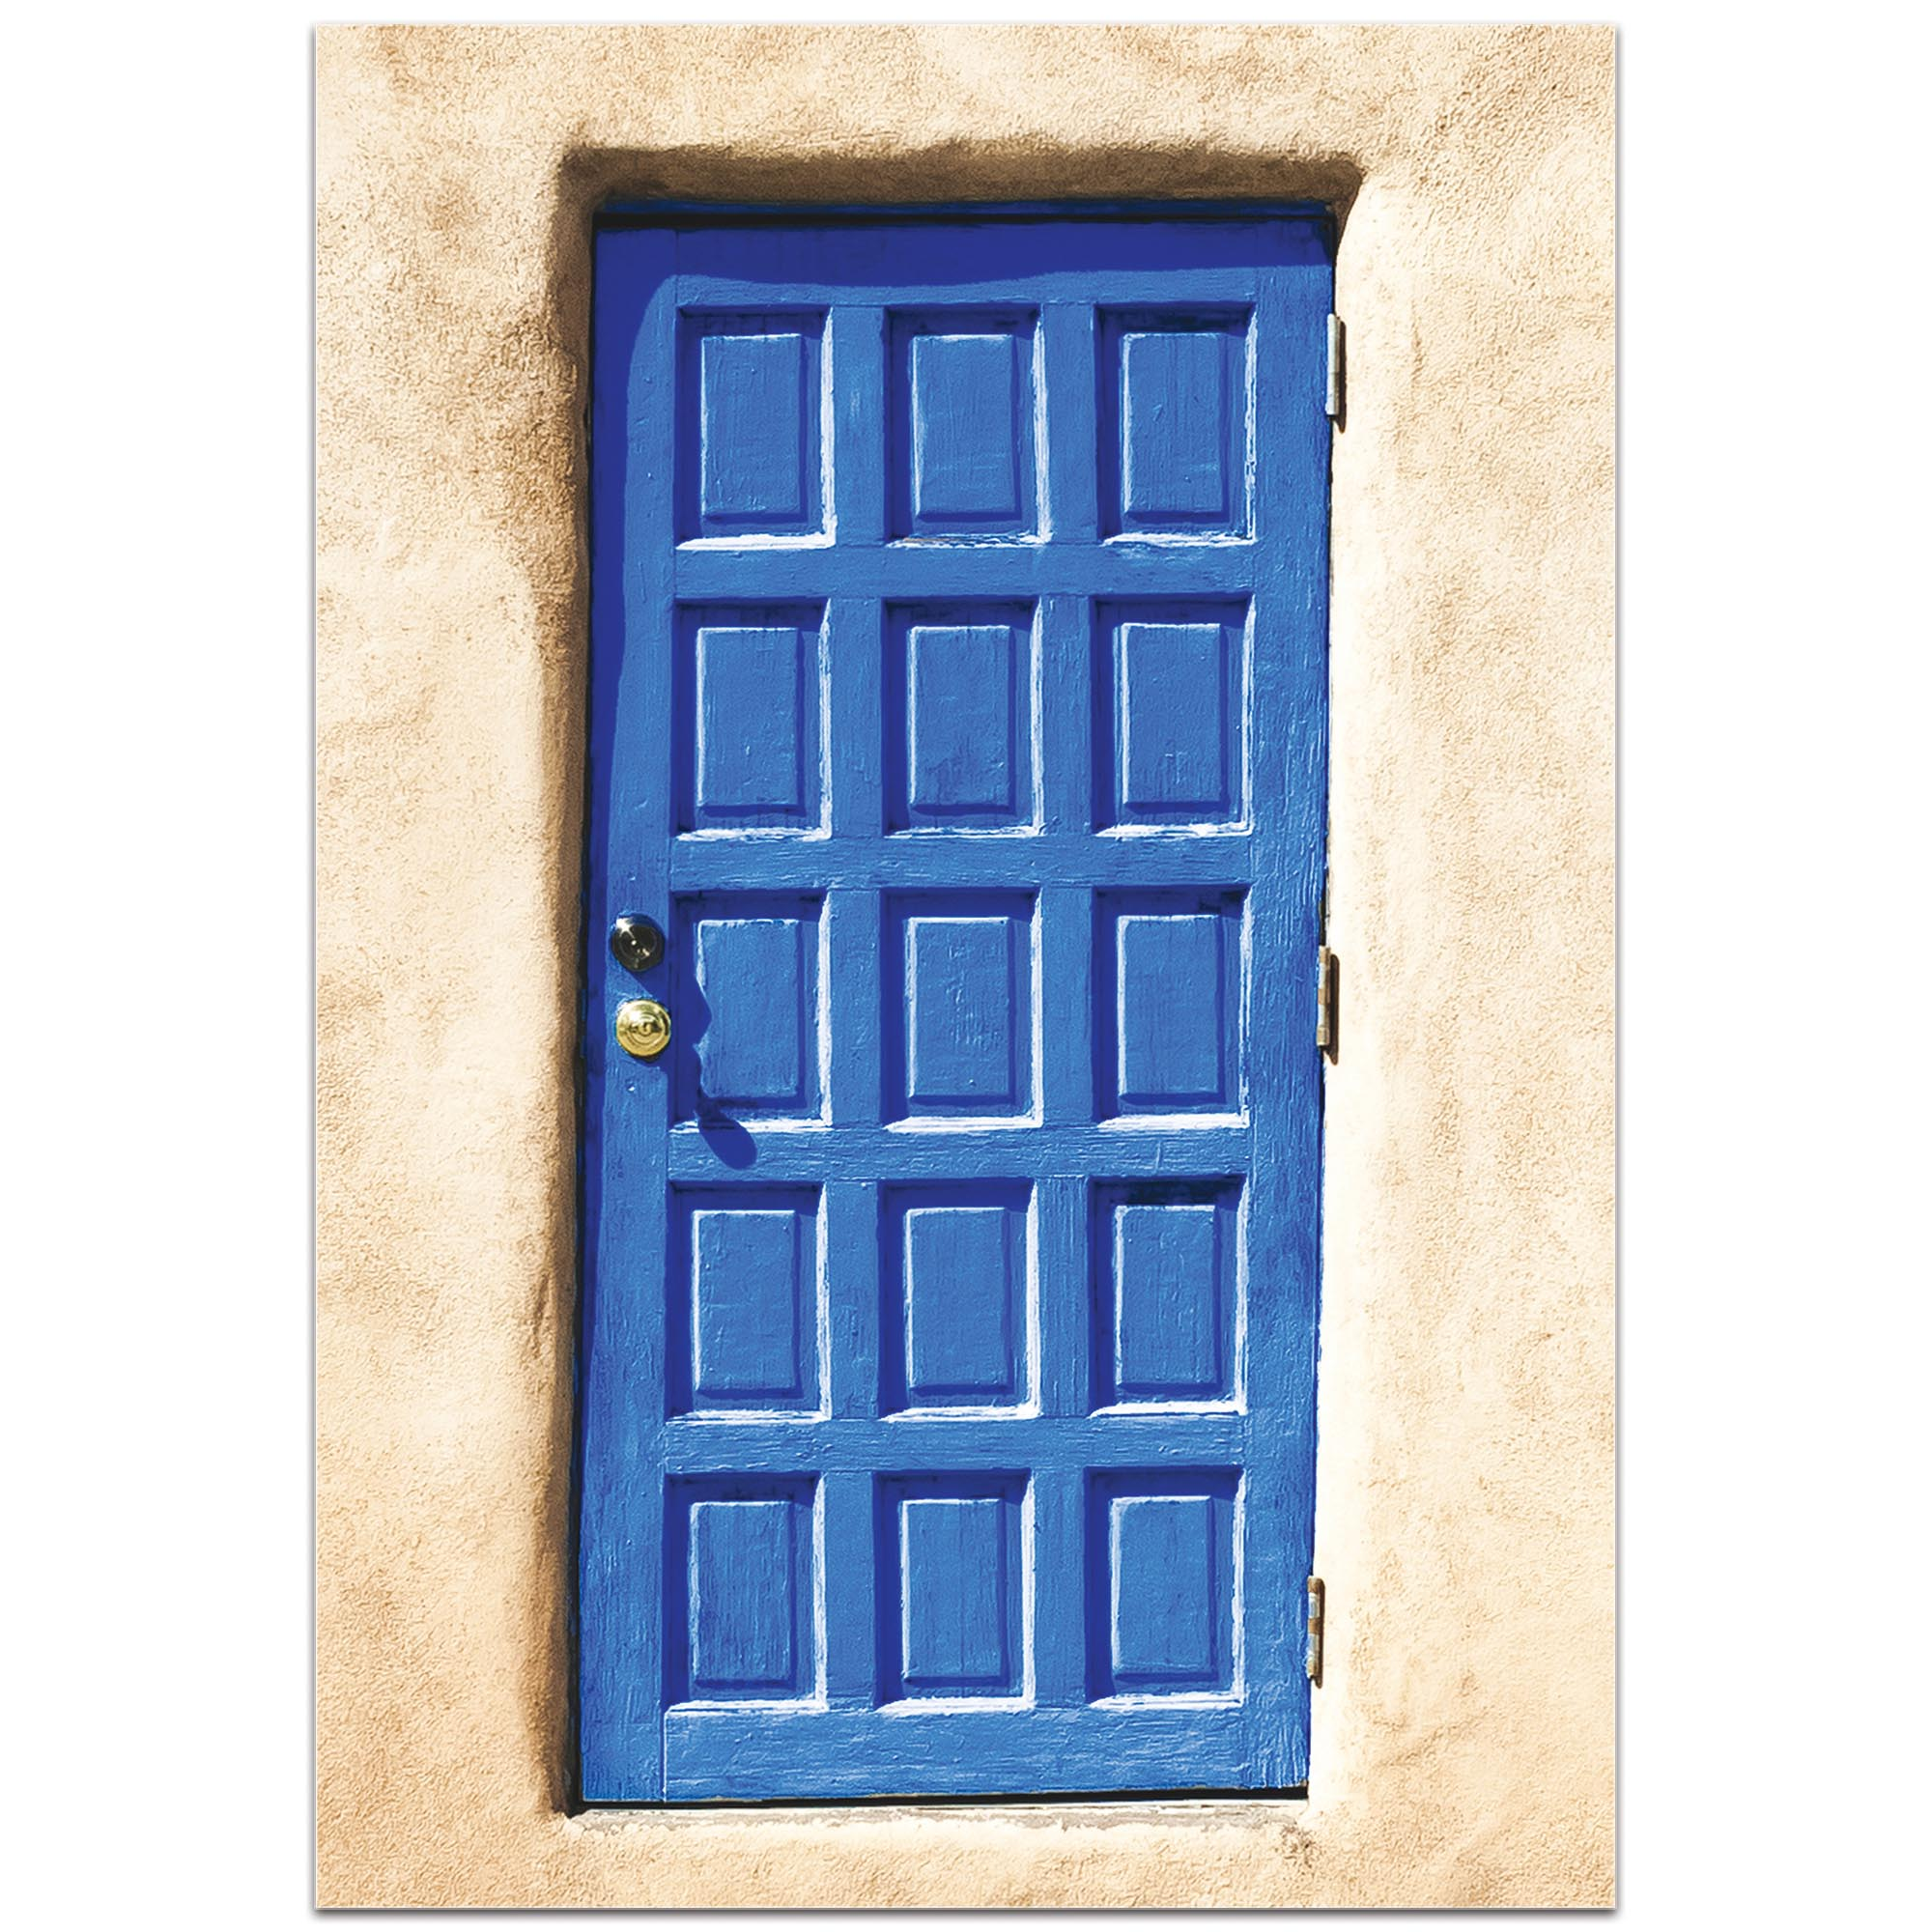 Eclectic Wall Art 'Blue Door' - Architecture Decor on Metal or Plexiglass - Image 2